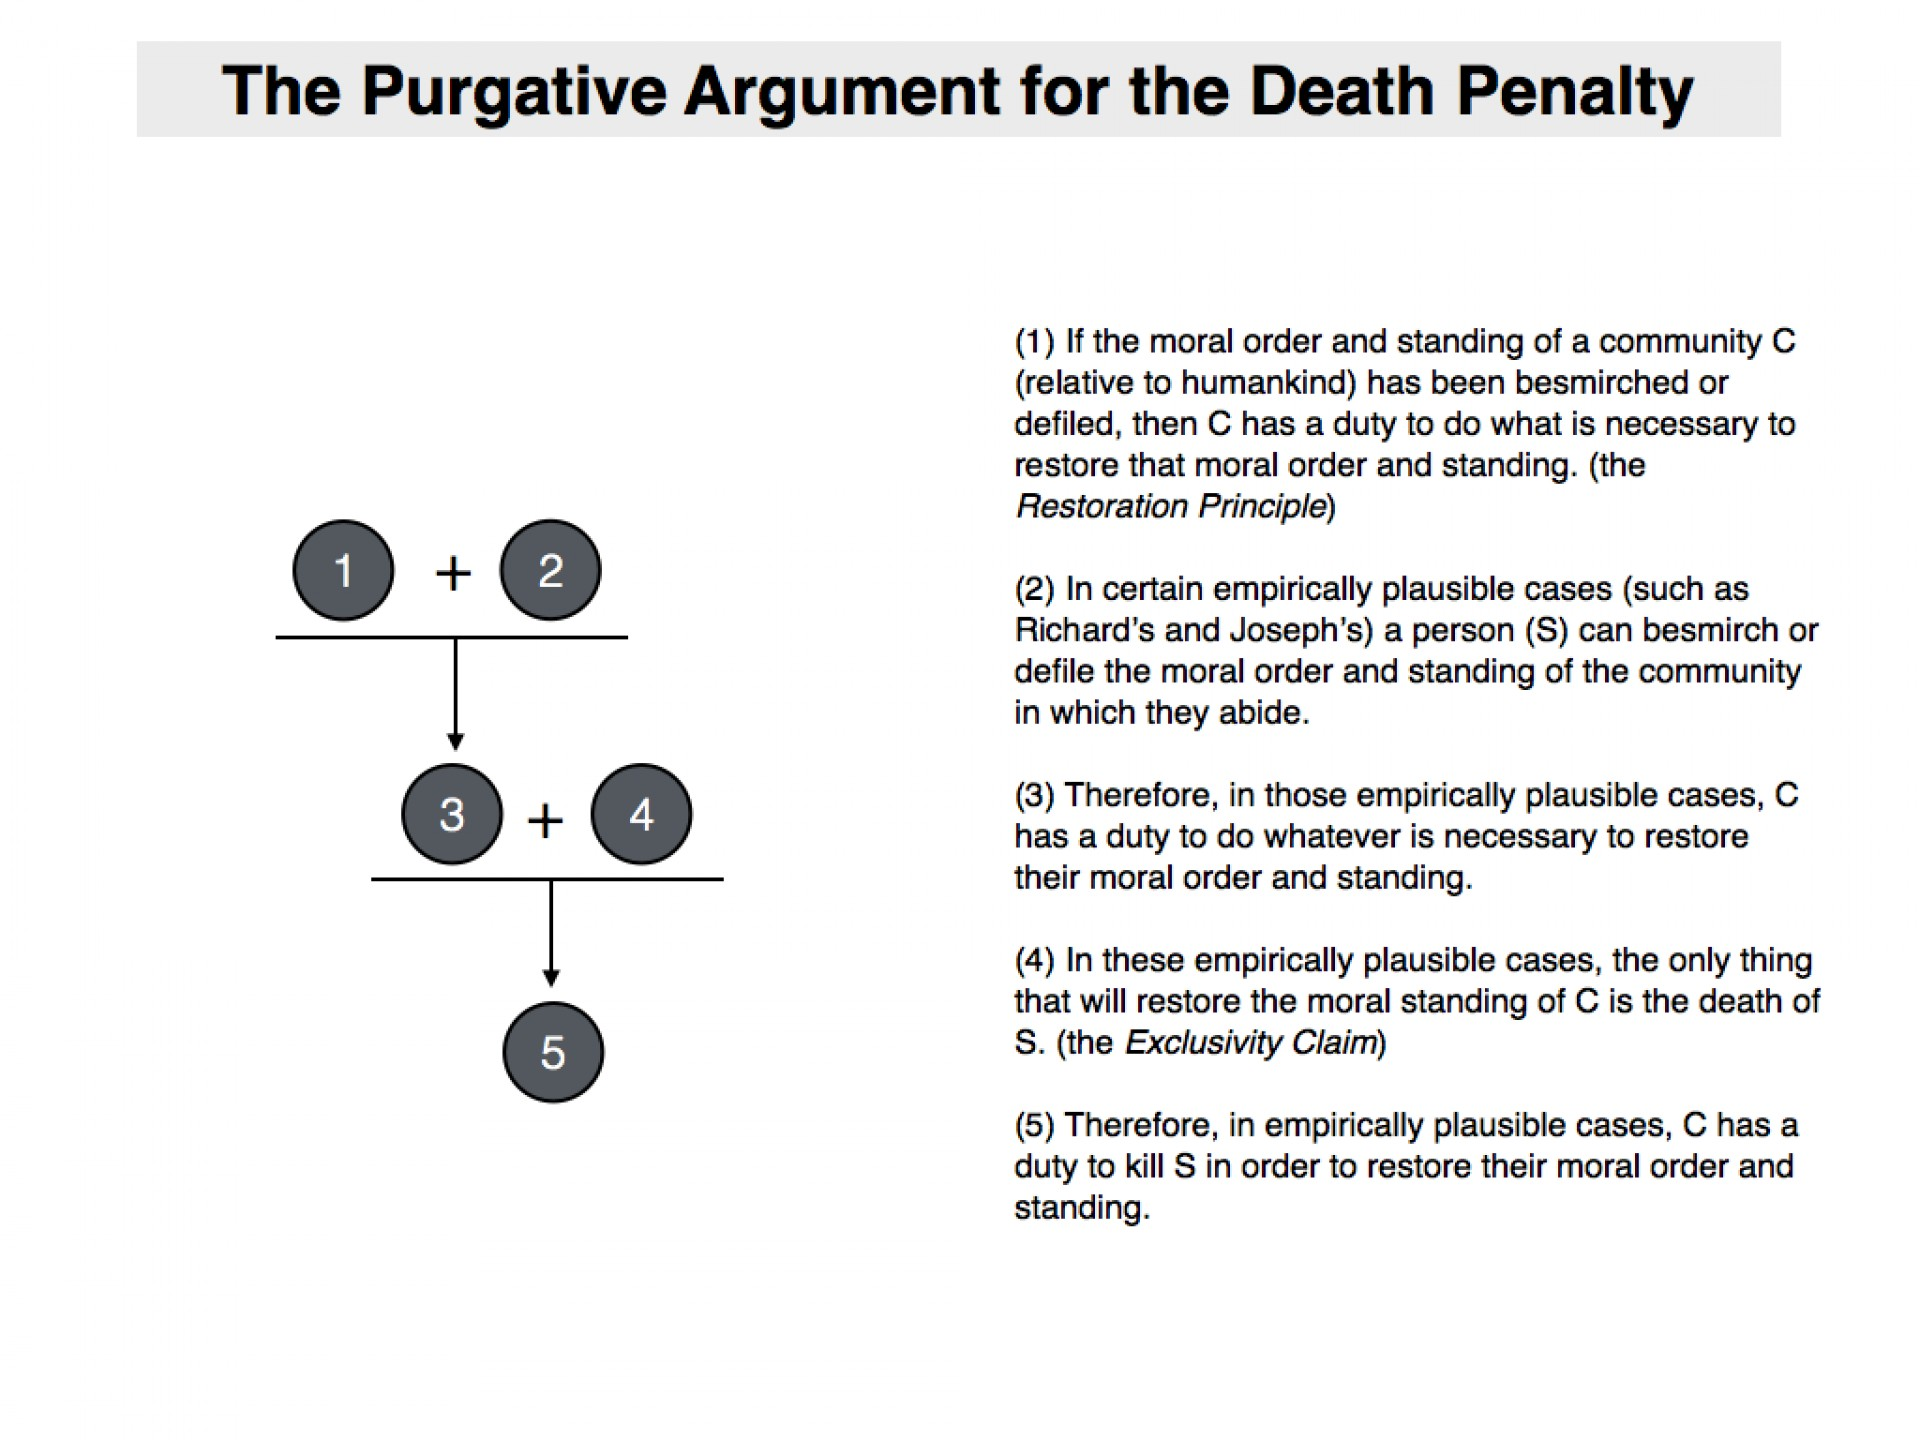 018 Pro Death Penalty Essay Example Purgativeargumentfordeathpenalty Fearsome Titles Outline 1920